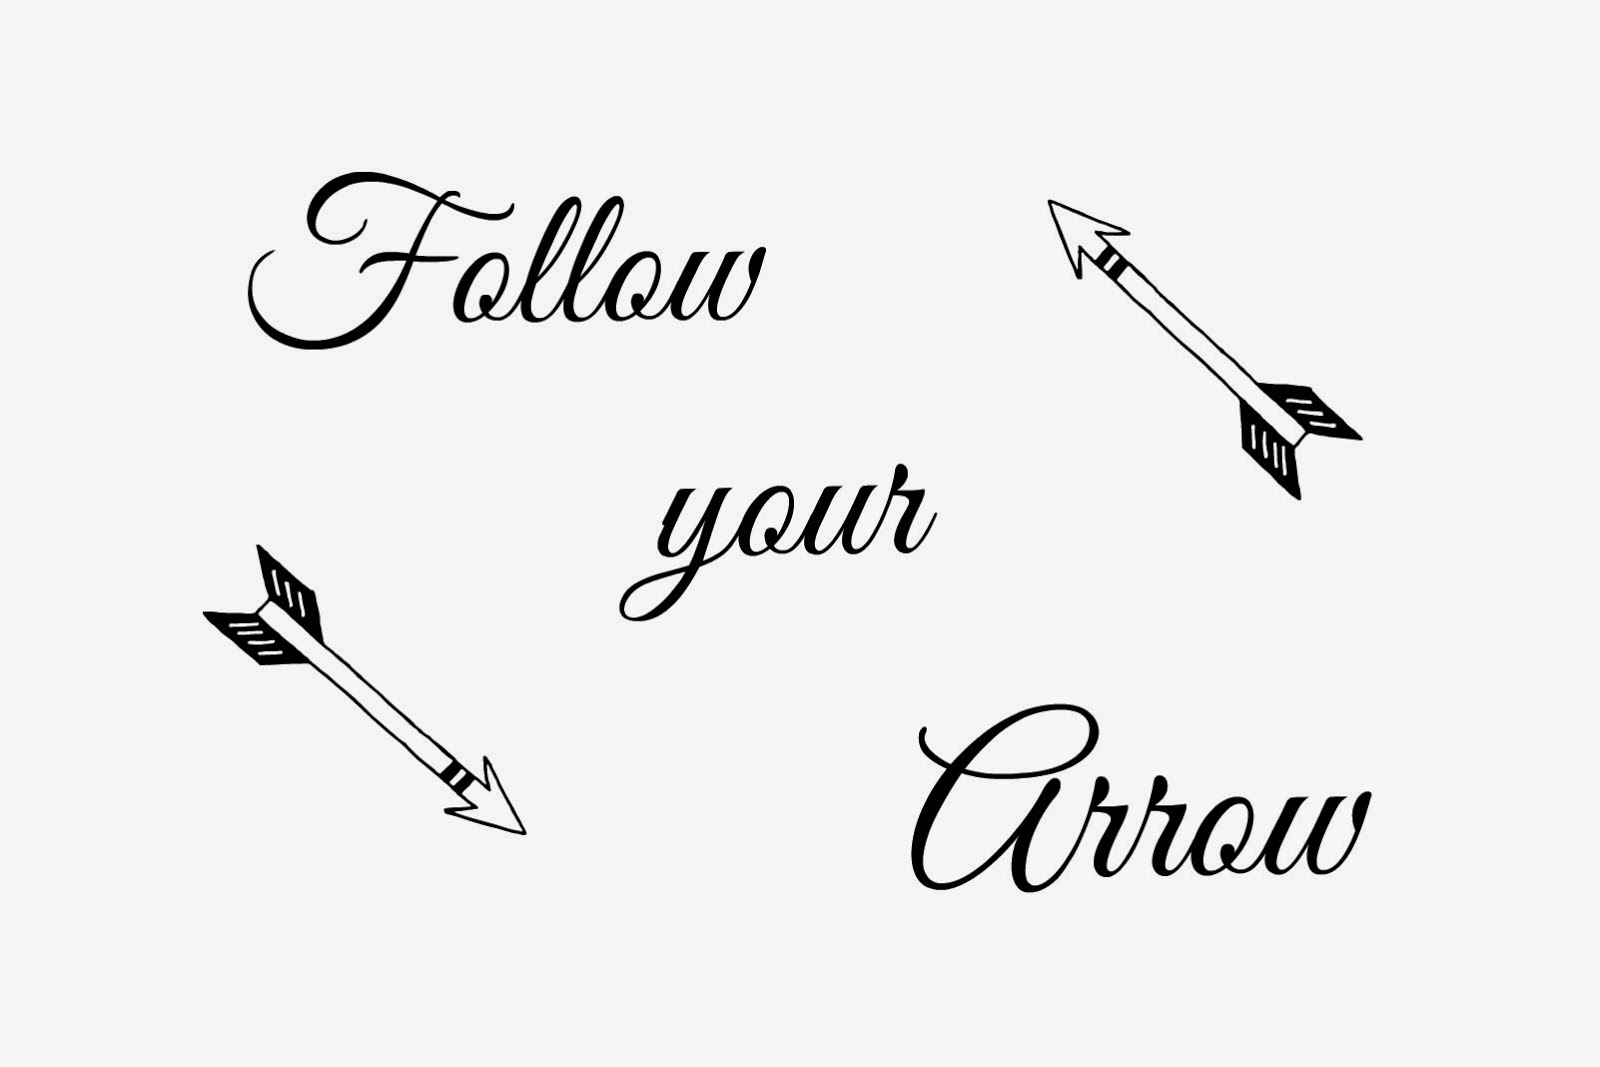 wall art, diy, Arrow, Follow Your Arrow by Kacey Musgraves, Printable